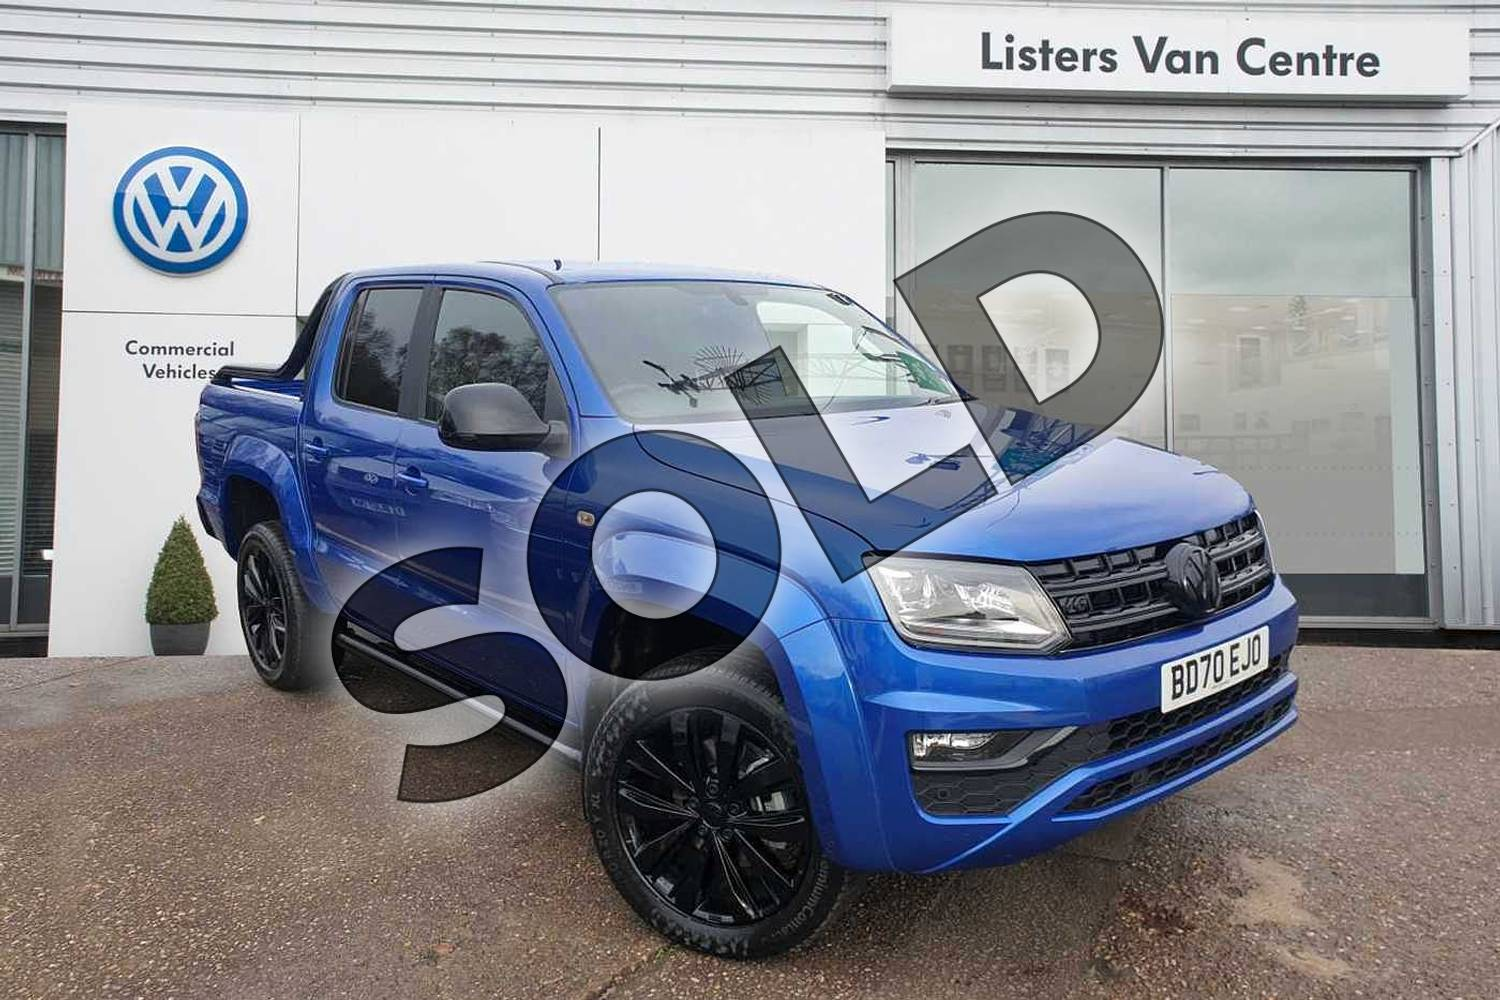 2020 Volkswagen Amarok A33 Special Editions D/Cab Pick Up Black Ed 3.0 V6 TDI 258 BMT 4M Auto in Blue at Listers Volkswagen Van Centre Coventry